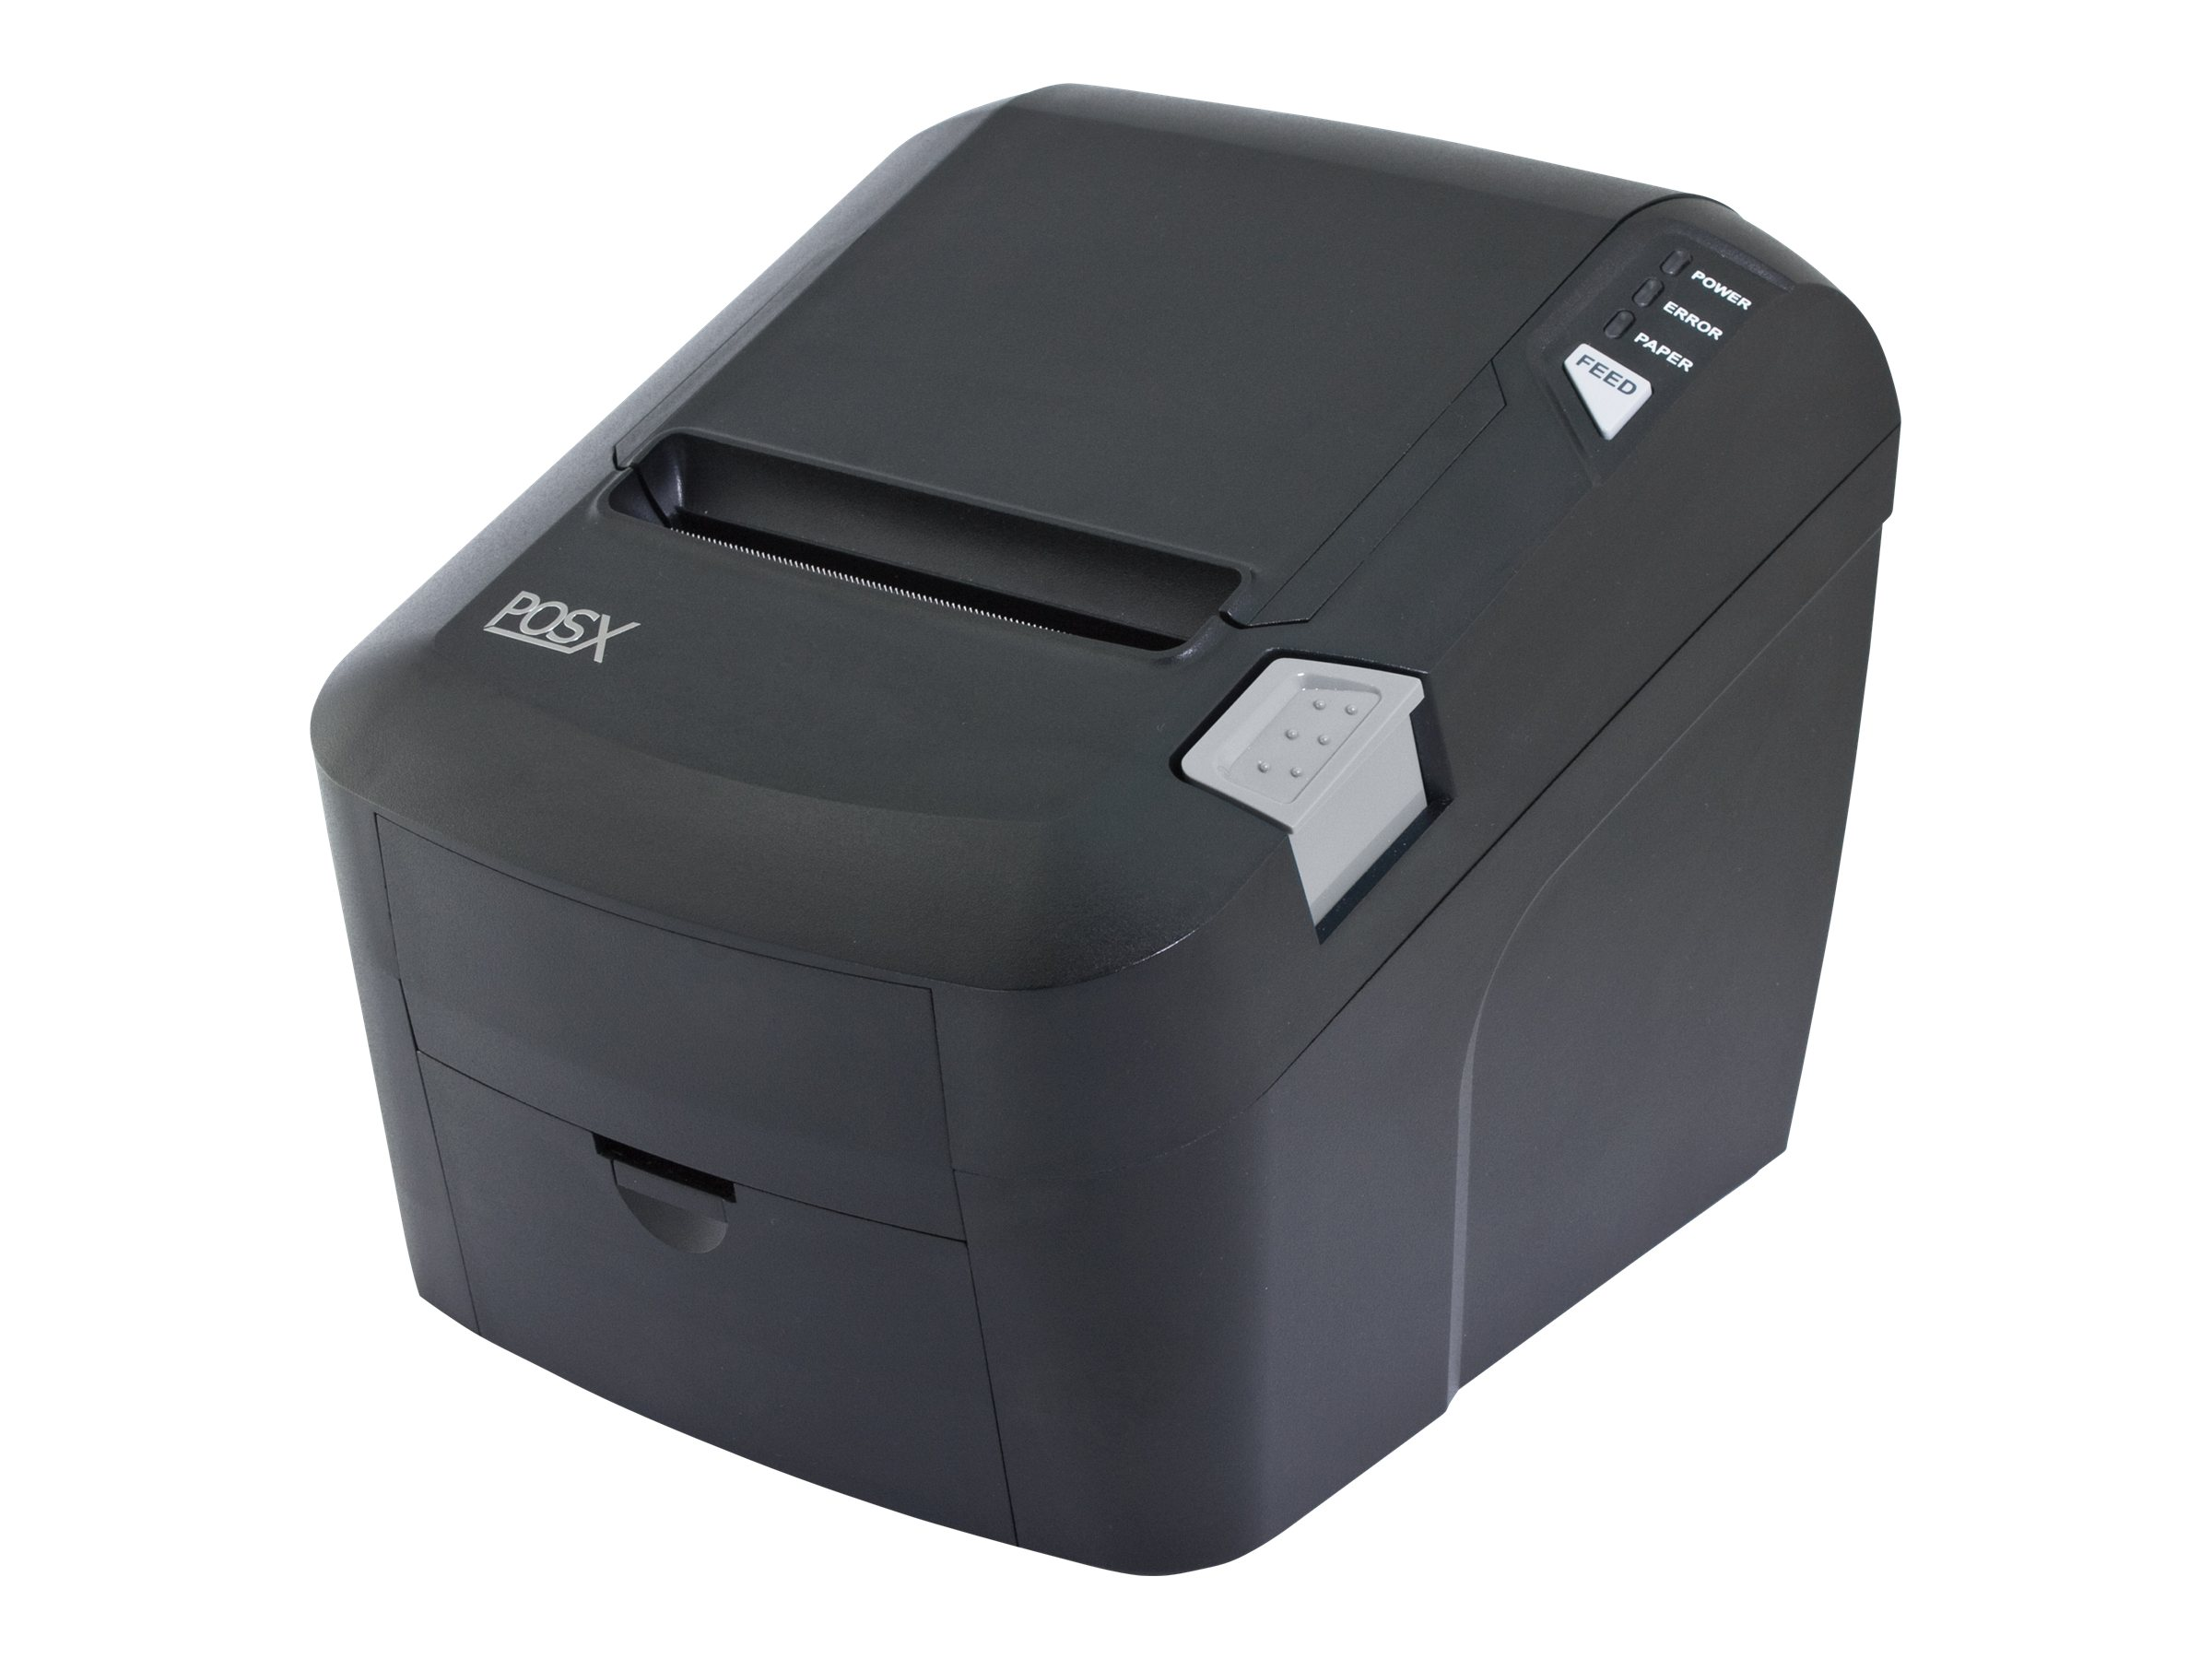 Pos-X EVO HiSpeed USB Ethernet Thermal Receipt Printer - Black, EVO-PT3-1HUE